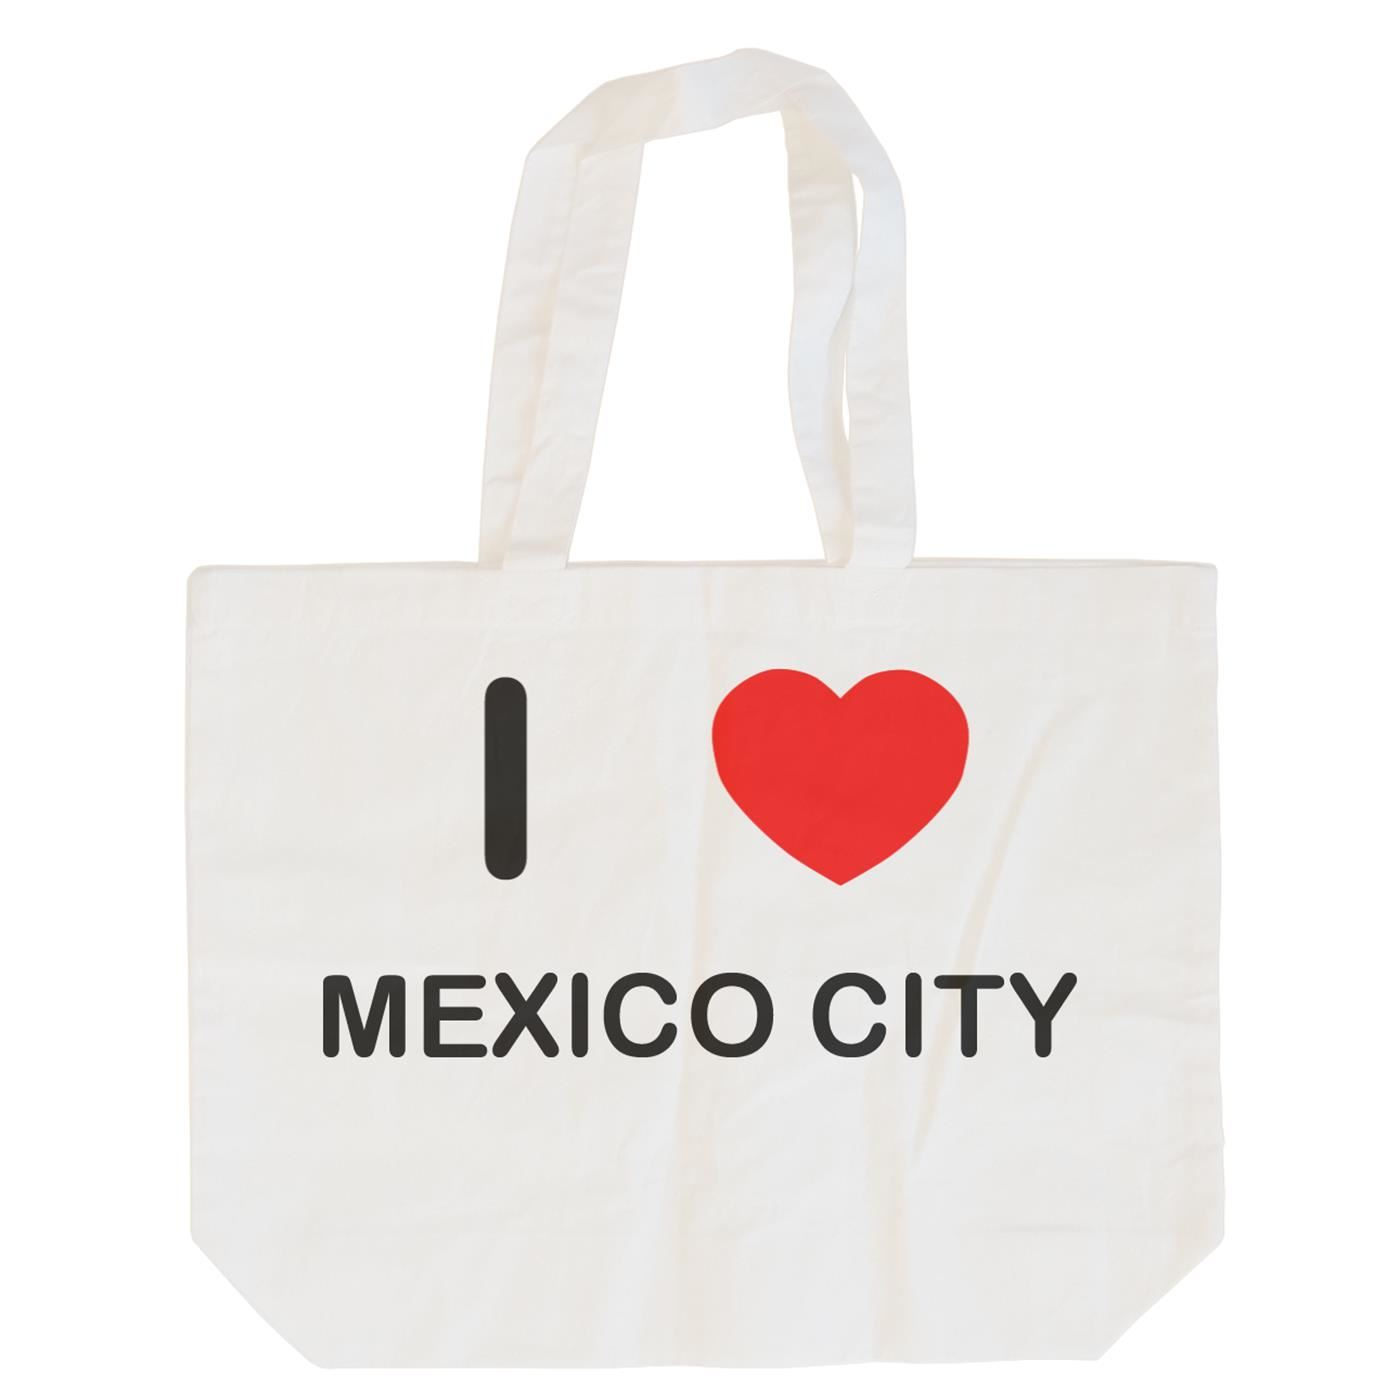 I Love Mexico City - Cotton Bag | Size choice Tote, Shopper or Sling